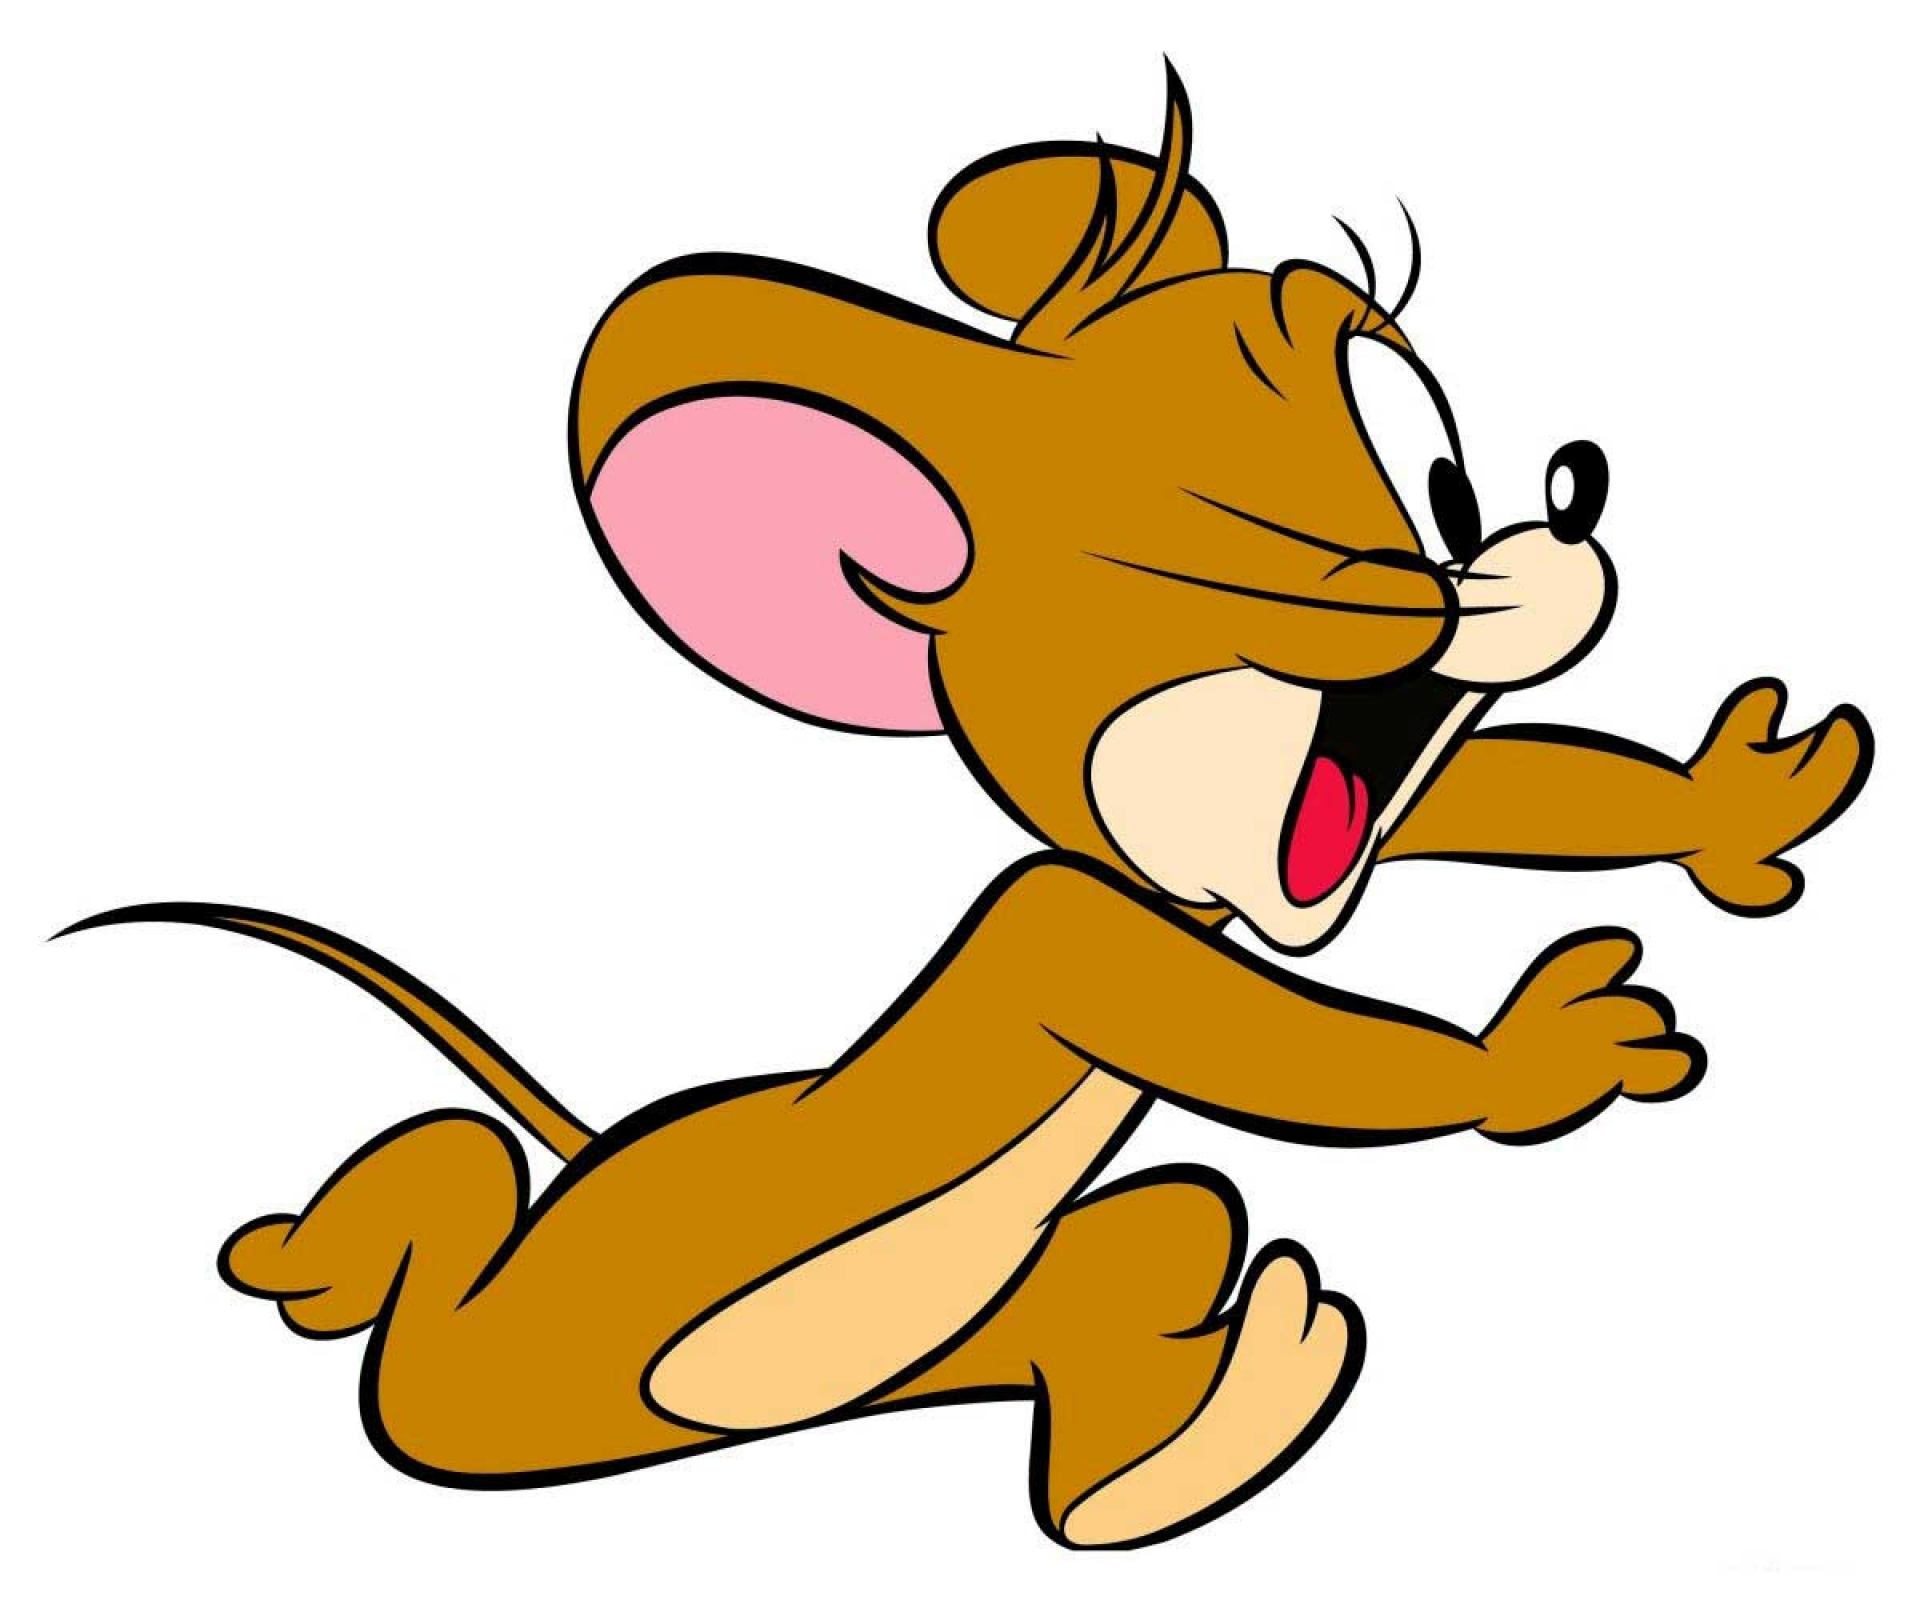 Cartoon wallpapers jerry the mouse running and shouting